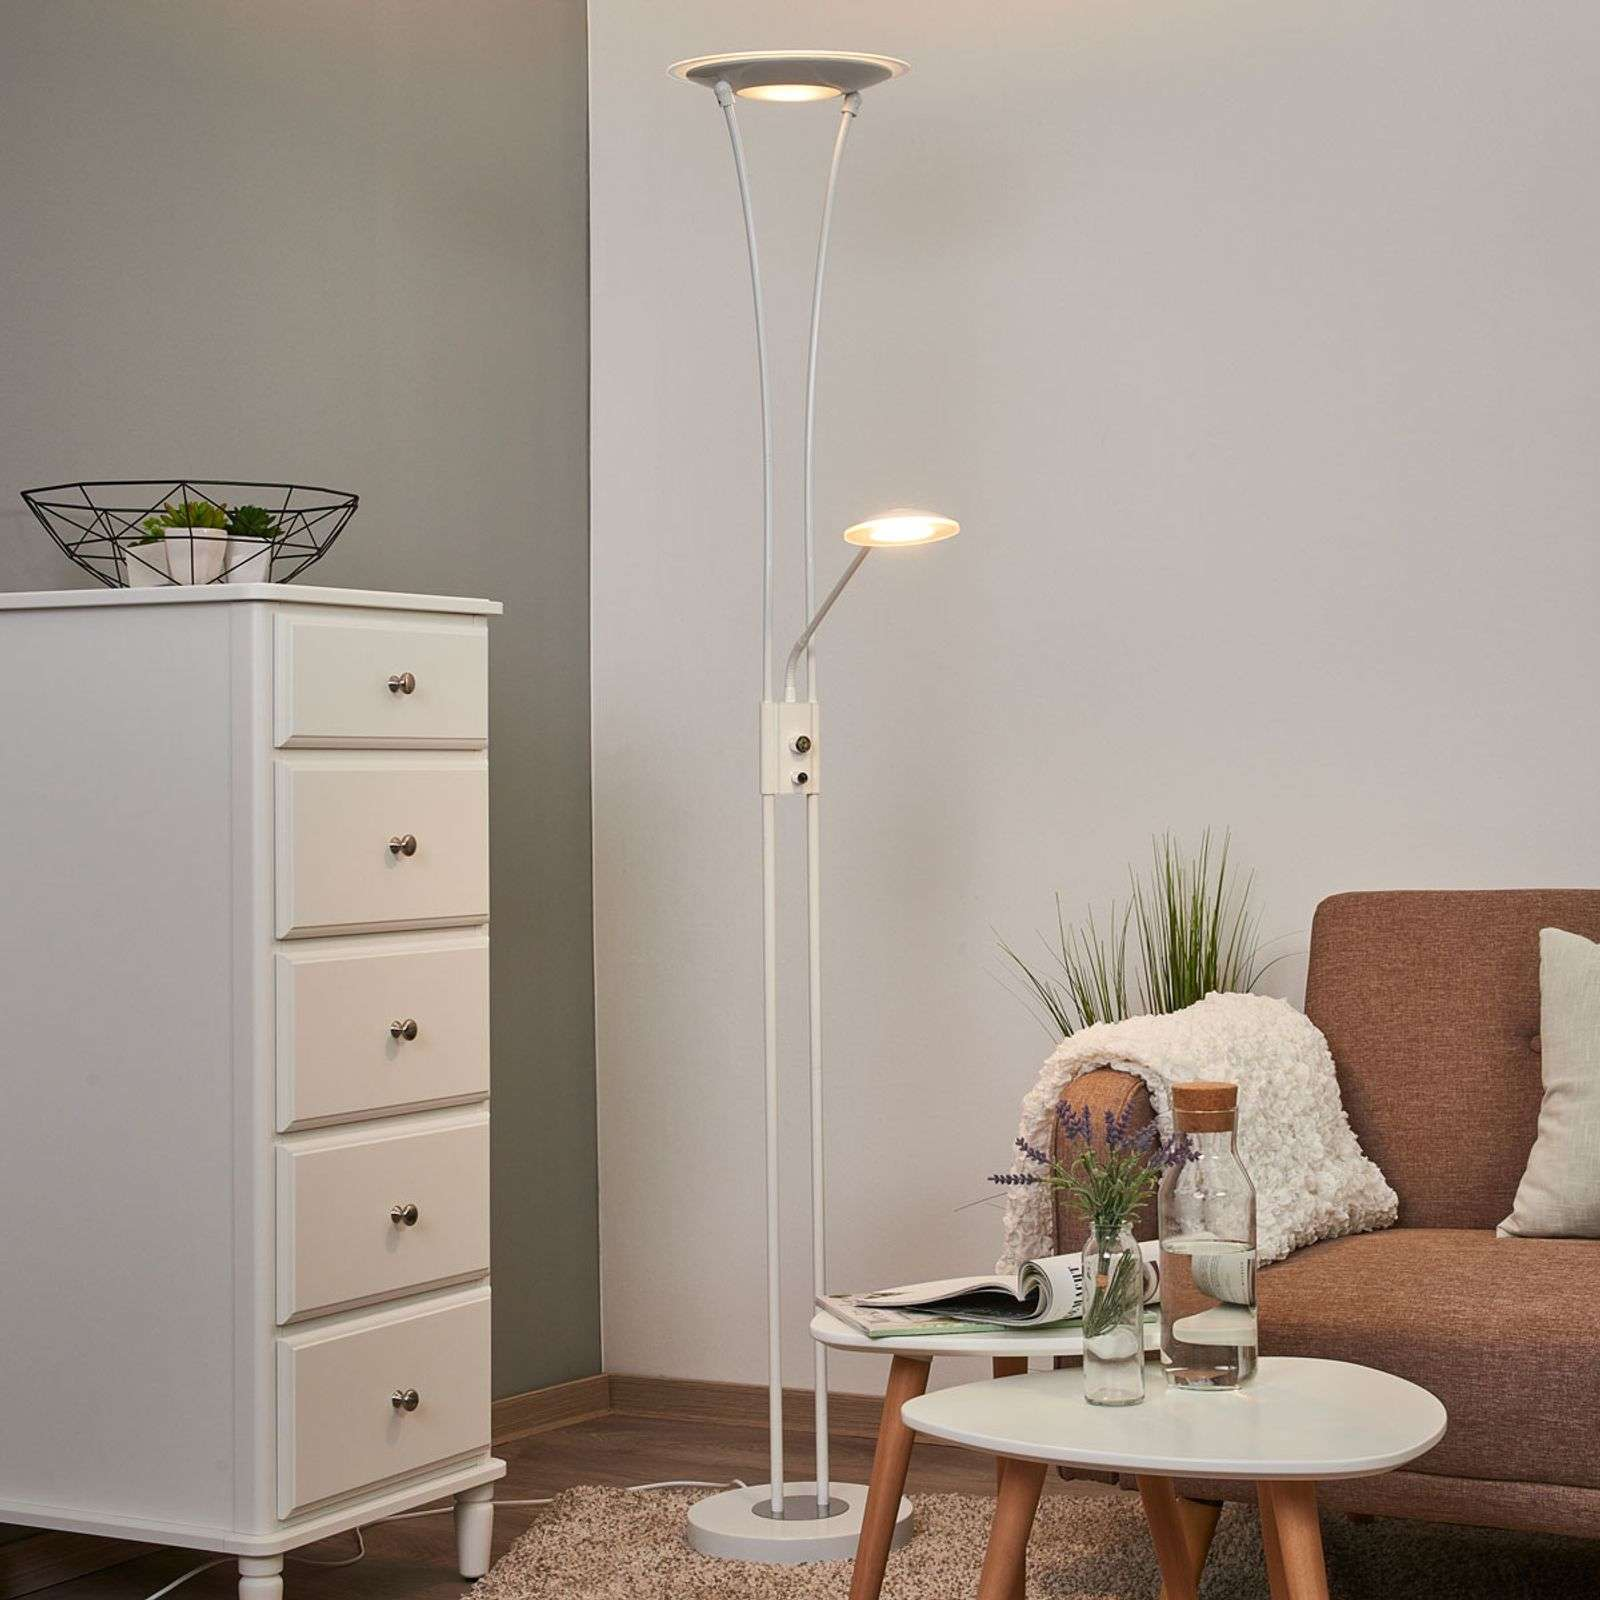 Lampadaire à éclairage indirect LED blanc Eda